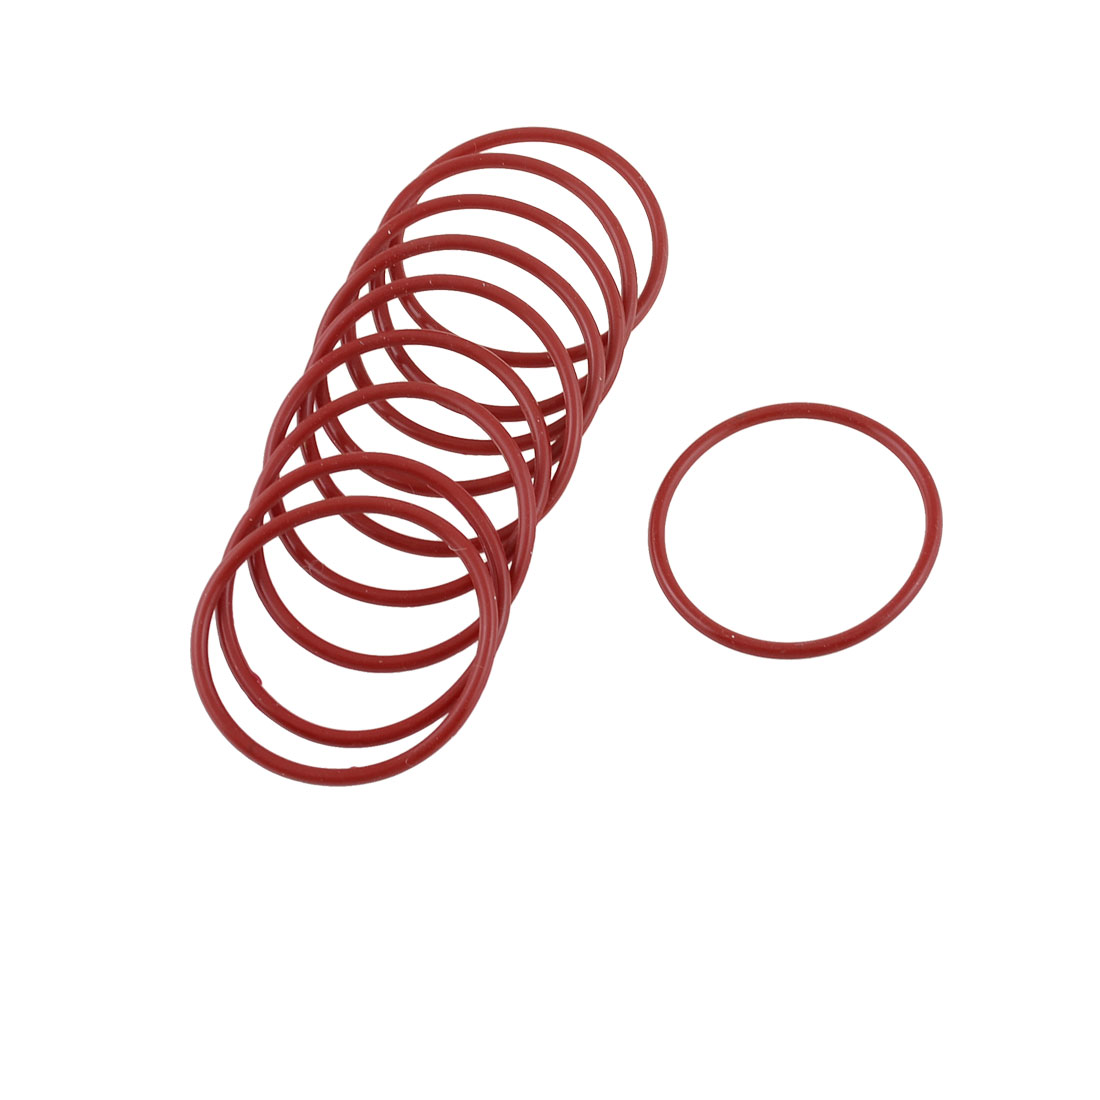 10pcs 40mm Outside Dia 2mm Thickness Rubber Oil Filter Seal Gasket O Rings Red